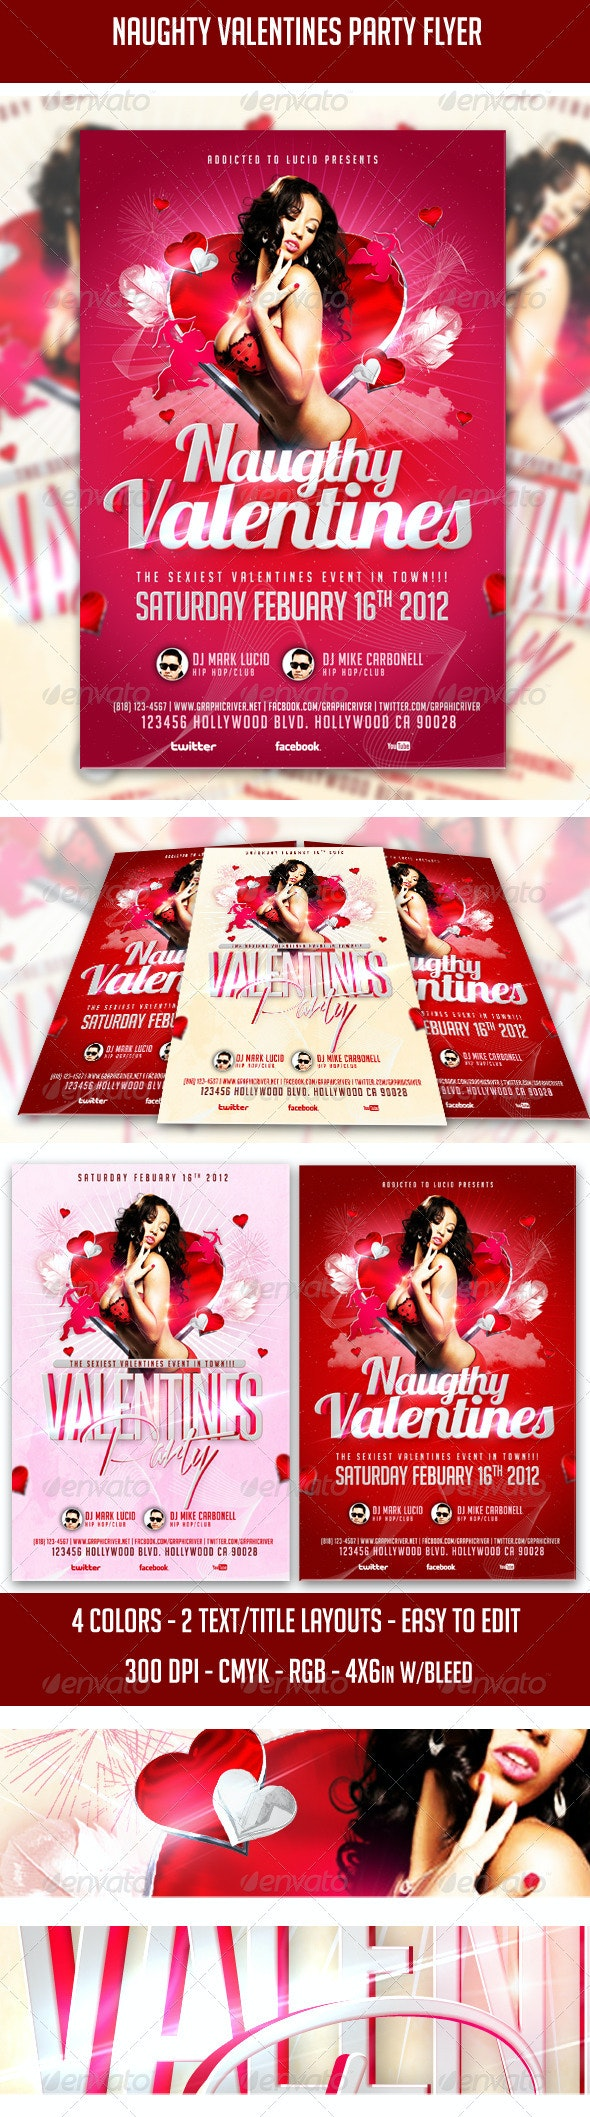 Naughty Valentines Party Flyer - Clubs & Parties Events